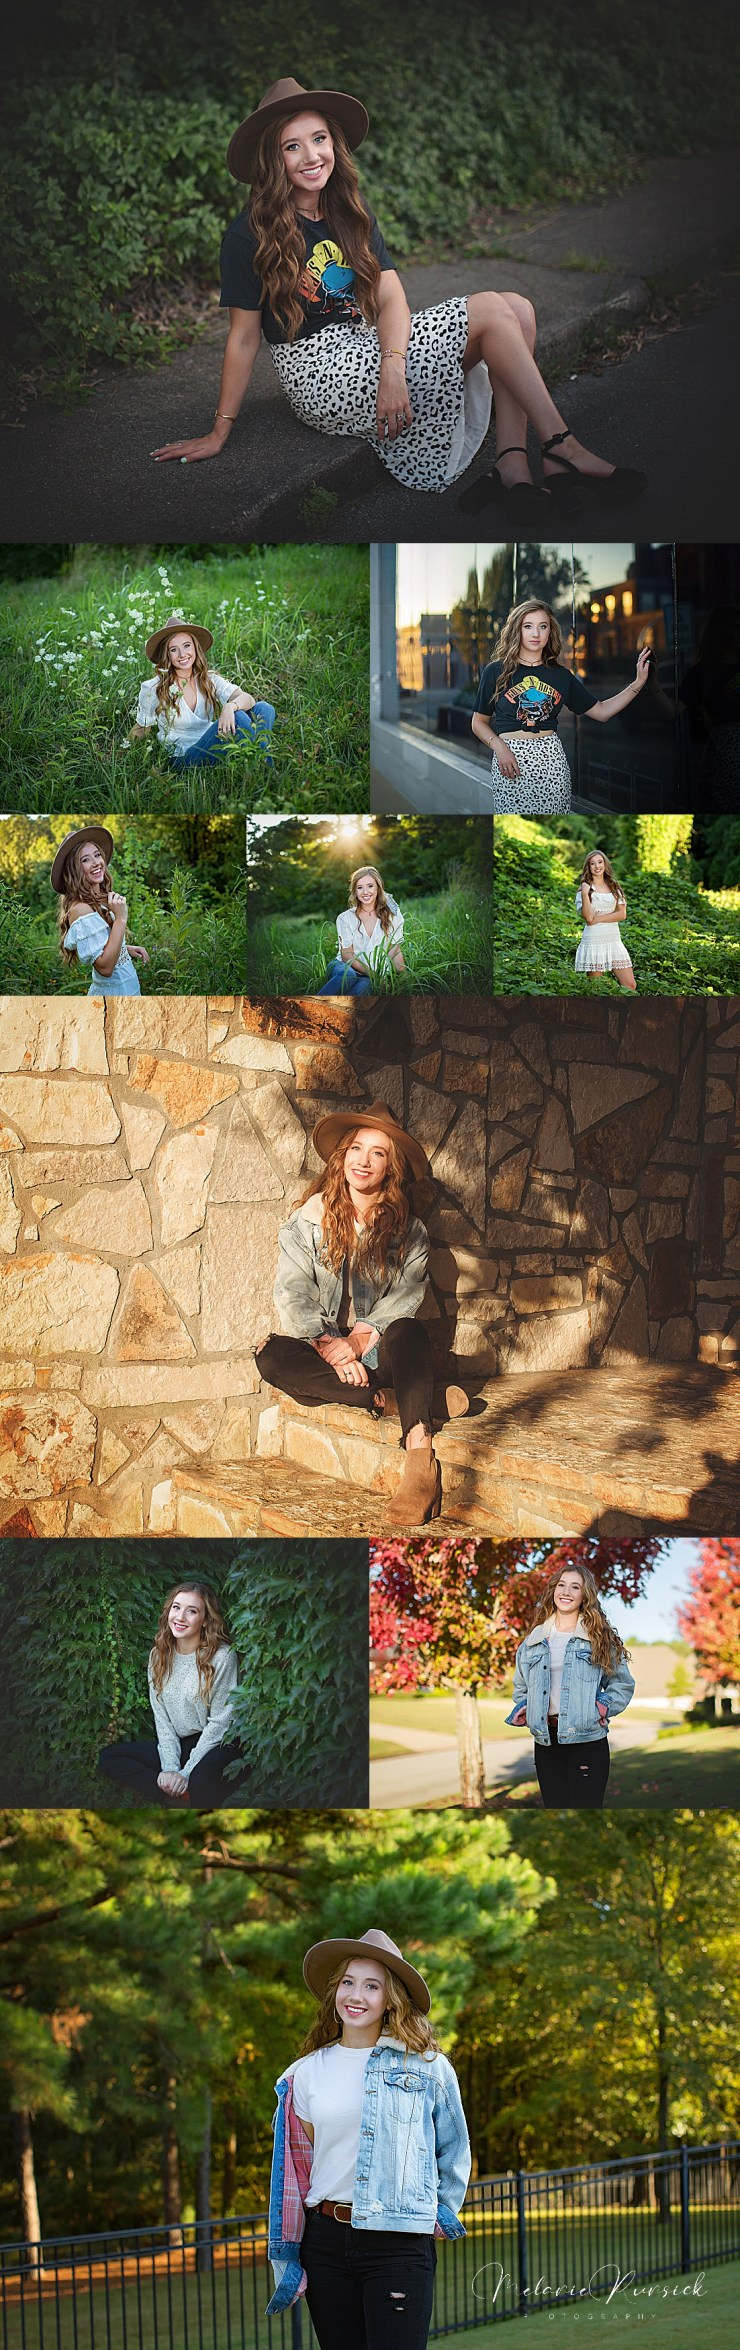 Arkansas Senior Photographer Melanie Runsick Photography Jonesboro AR